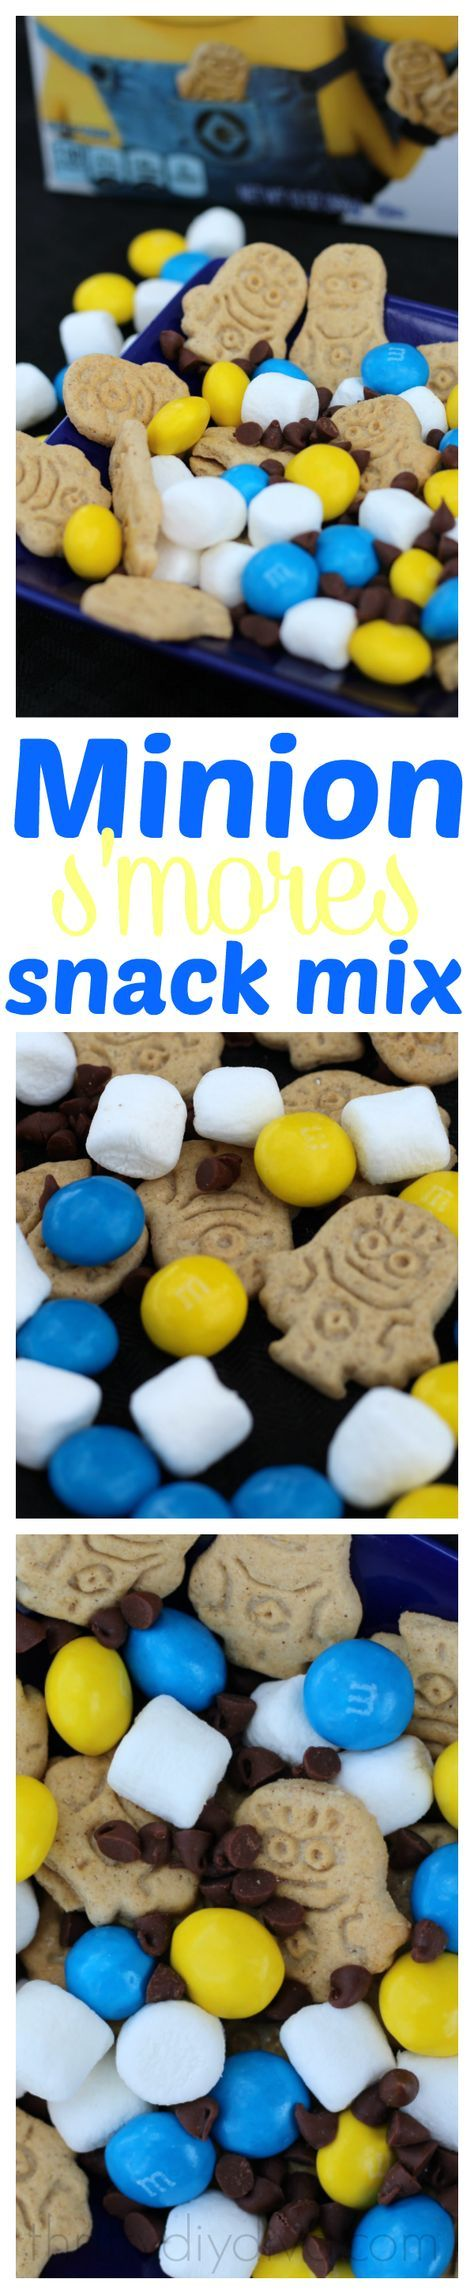 Perfect treat for Minions fans!  Minion S'mores Snack Mix ... A cute smores treat for the kids!